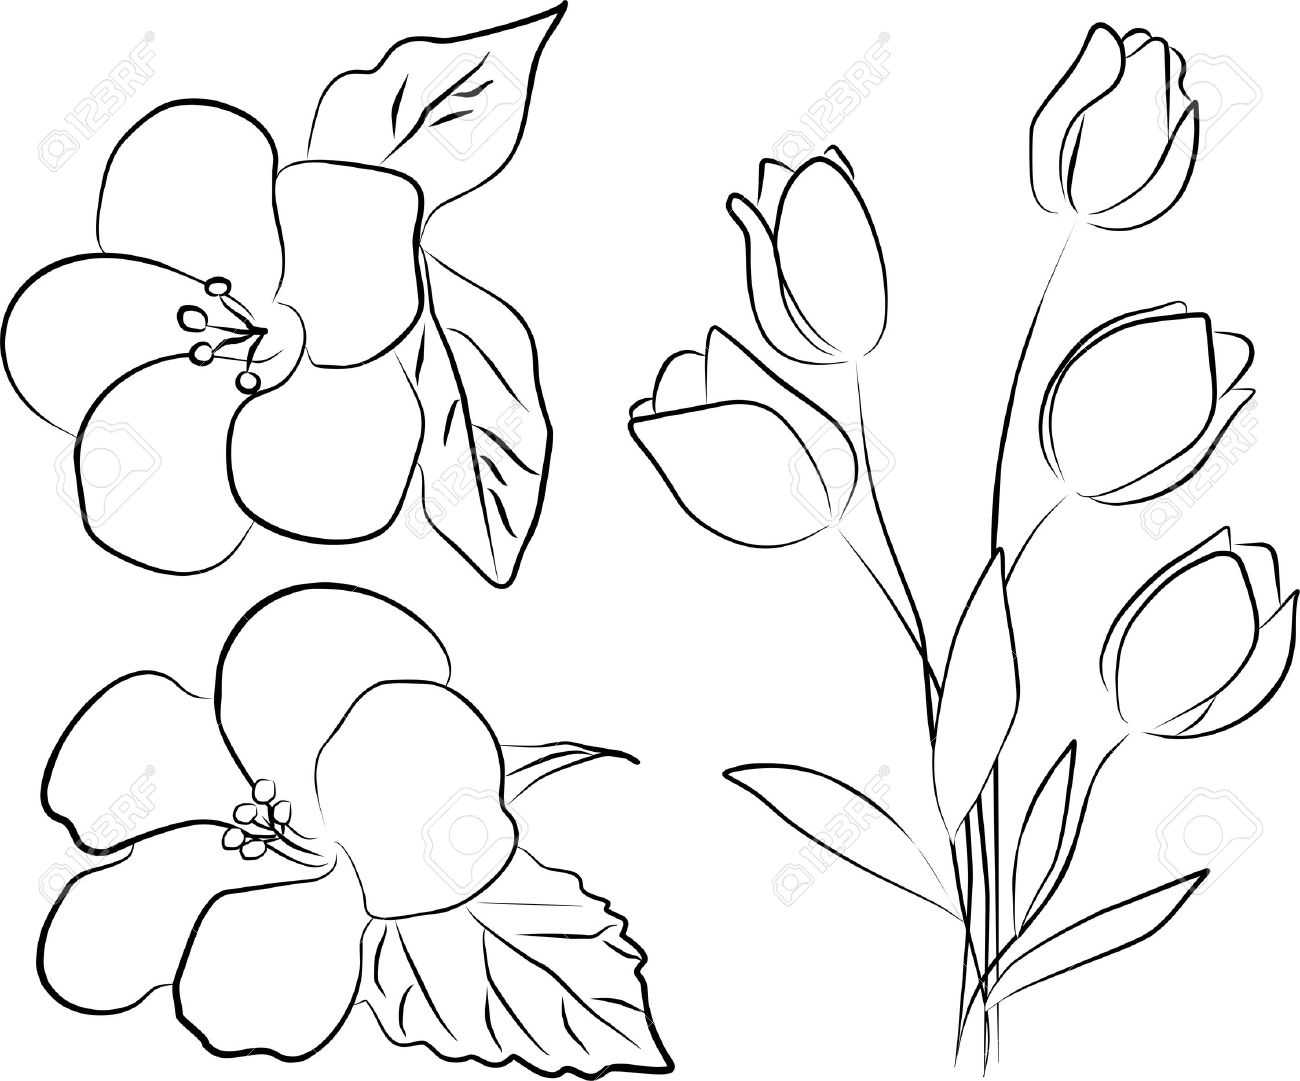 Easy Tulip Drawing At GetDrawings.com